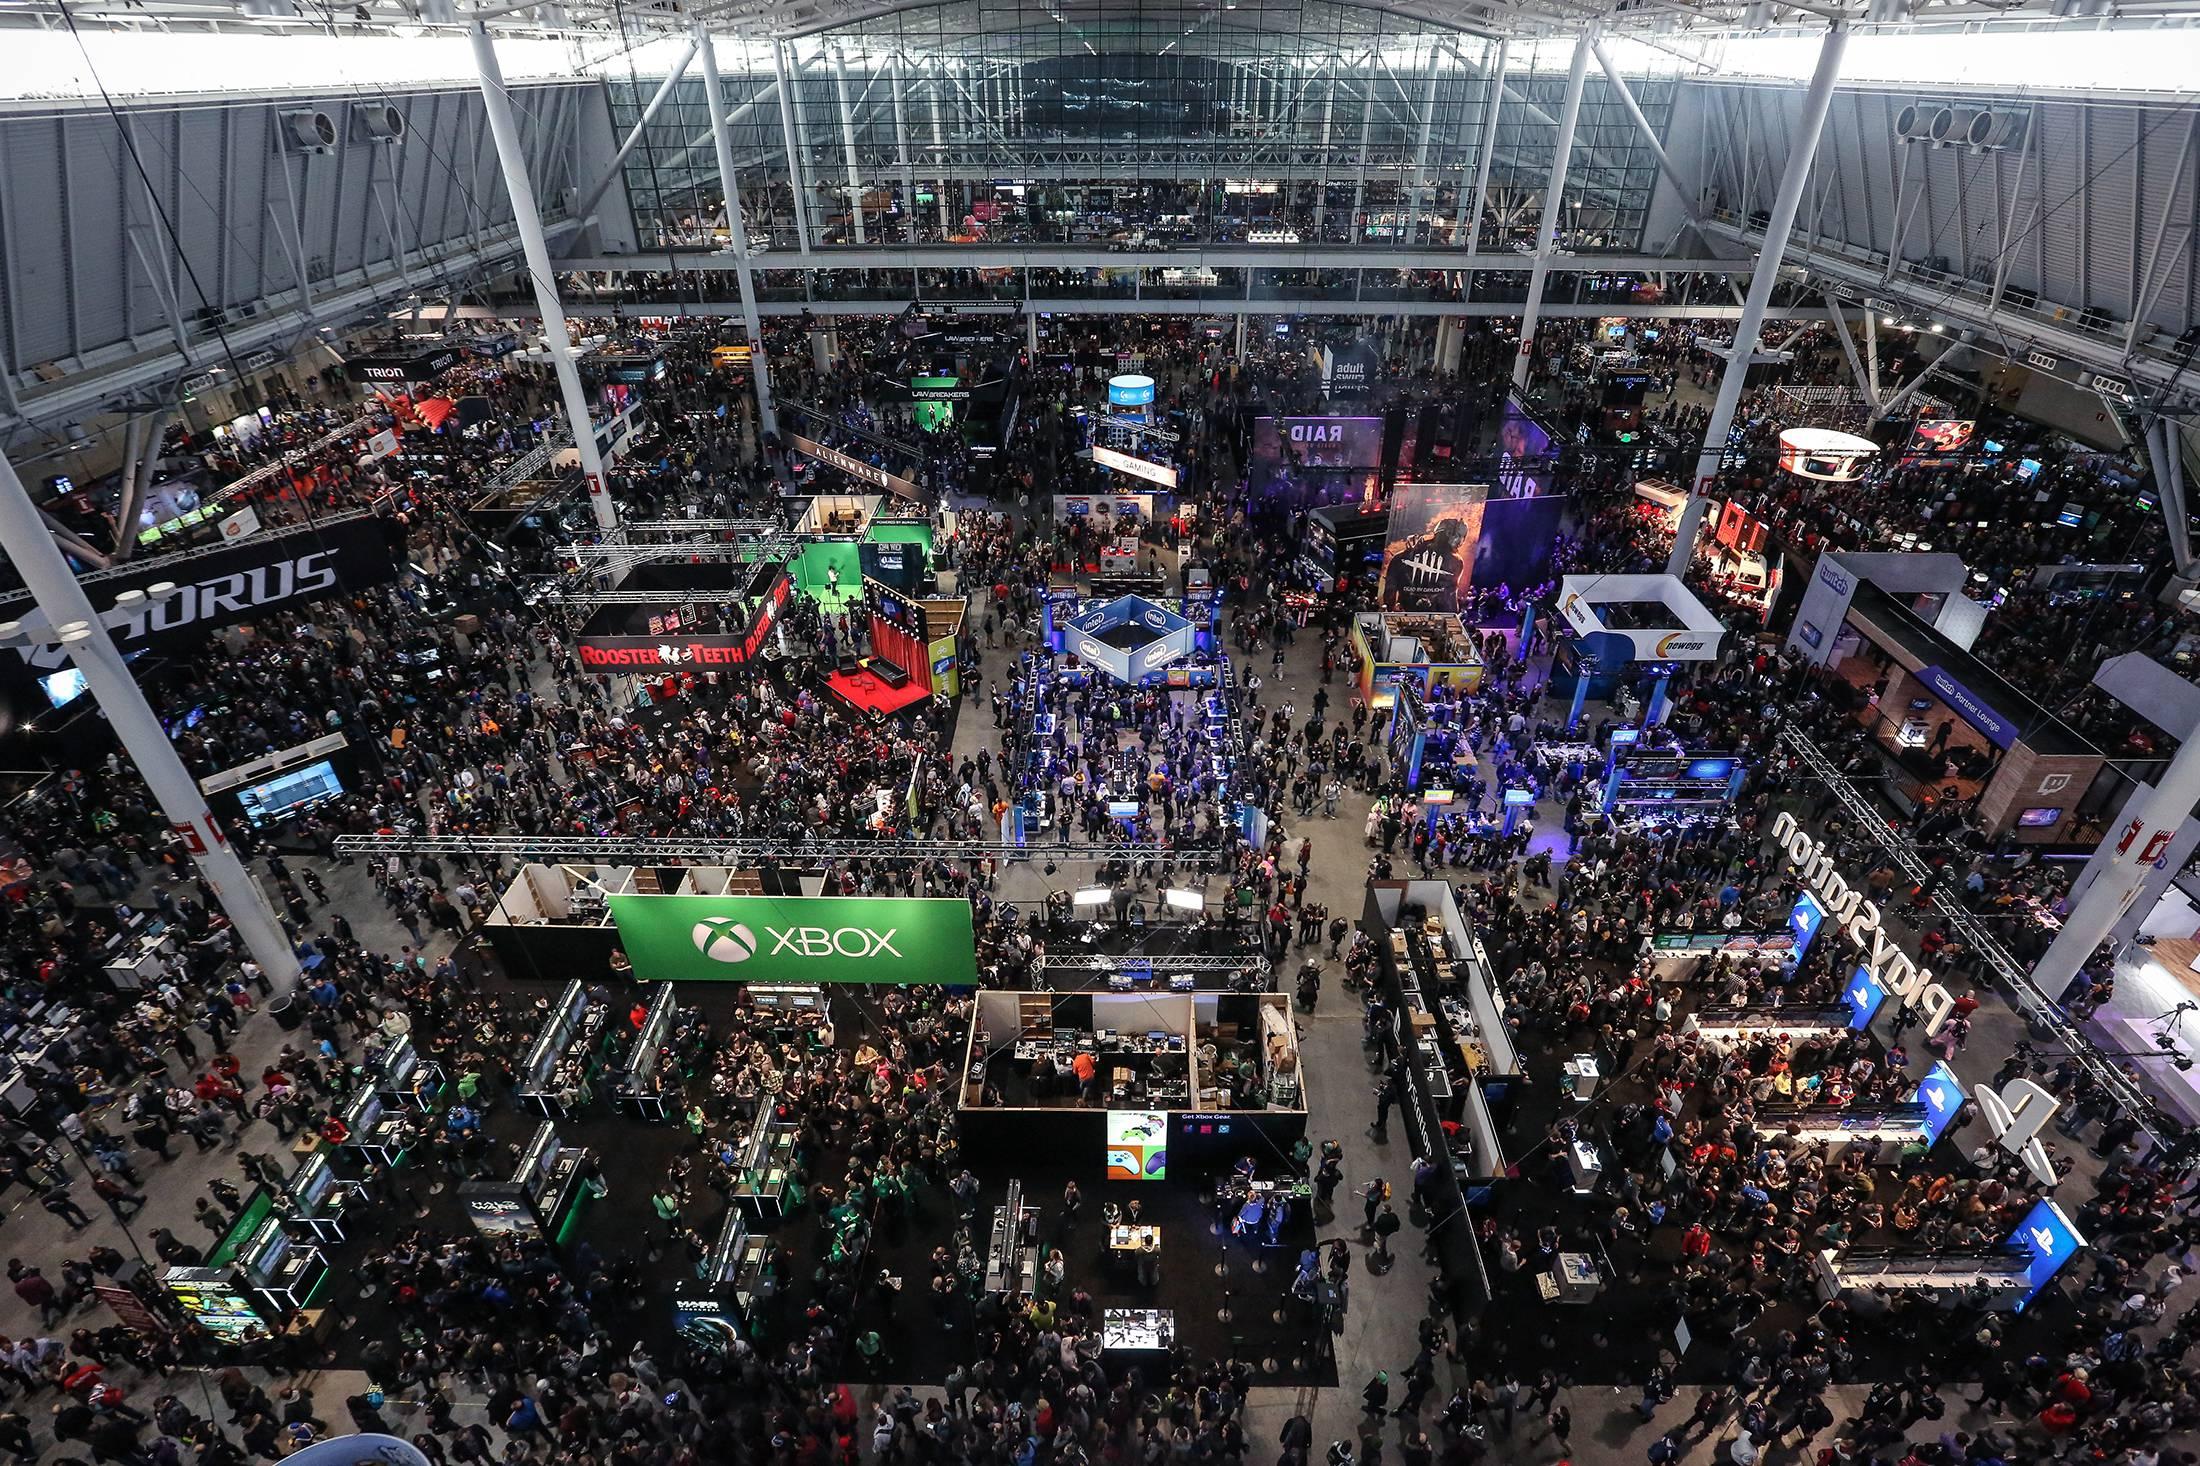 a shot of the convention center for PAX East